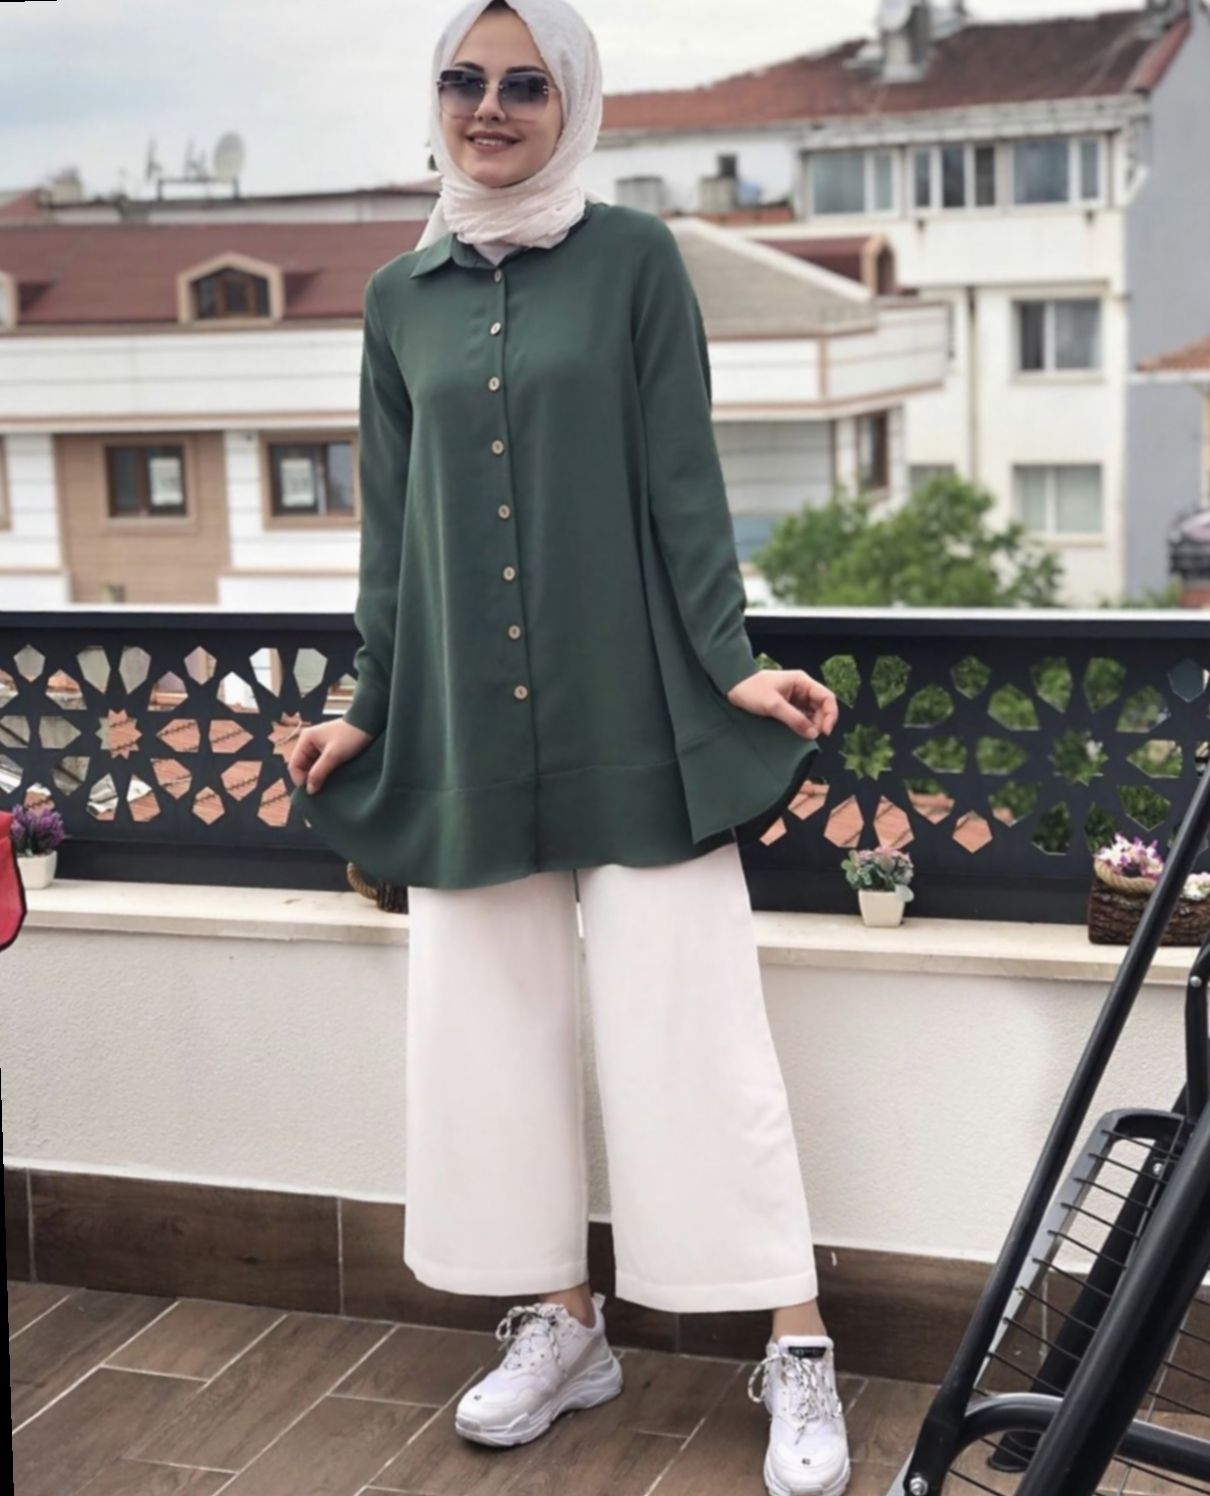 ✓ Dress Casual Muslim Chic #outfits #glam #outfitoftheday  Gaya